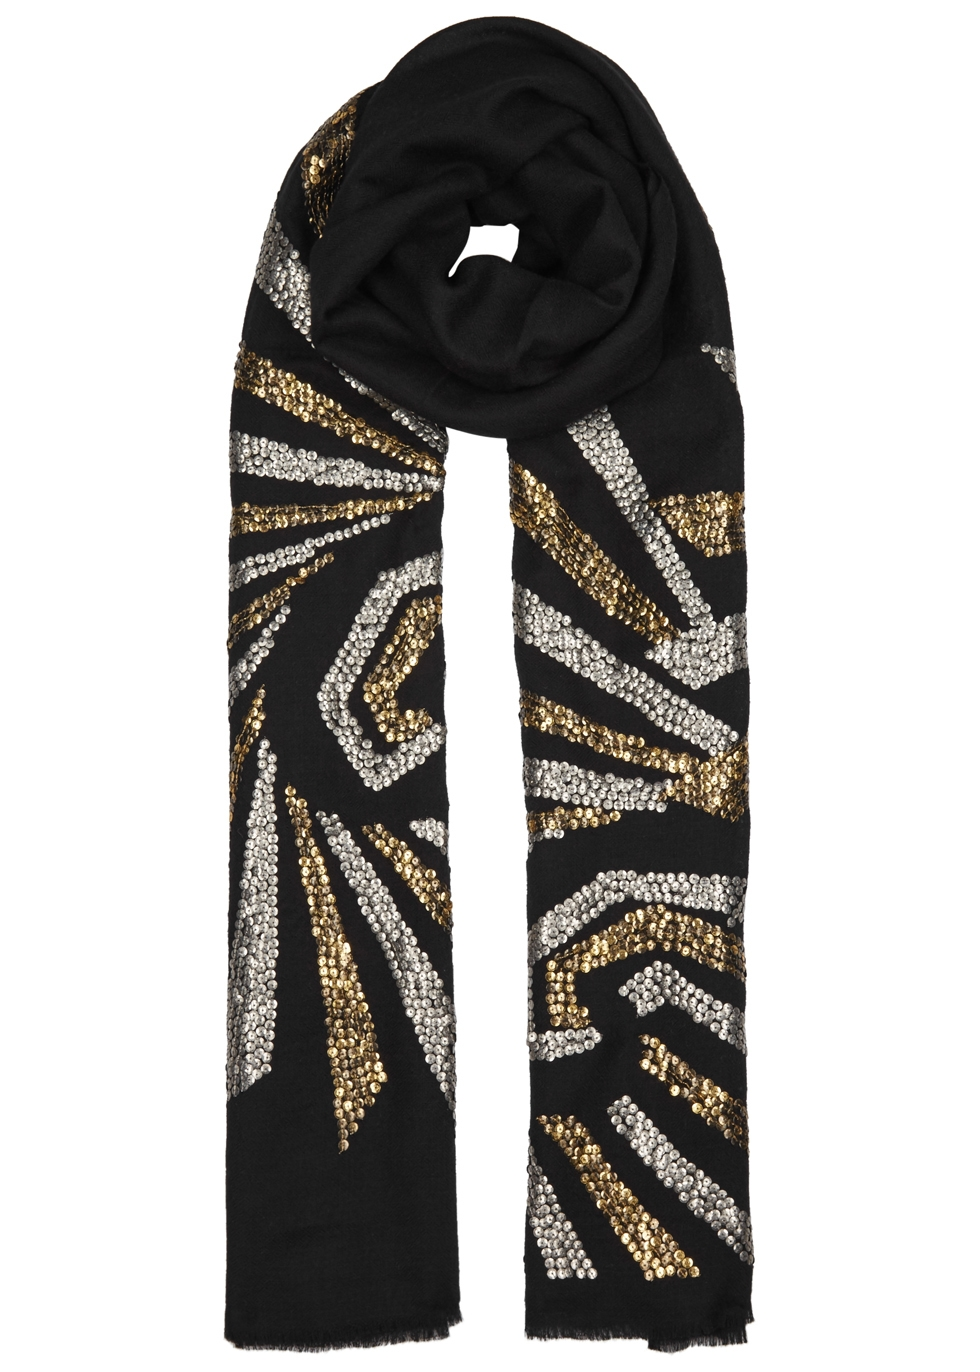 JANAVI Sequence Illusion Embellished Cashmere Scarf in Black